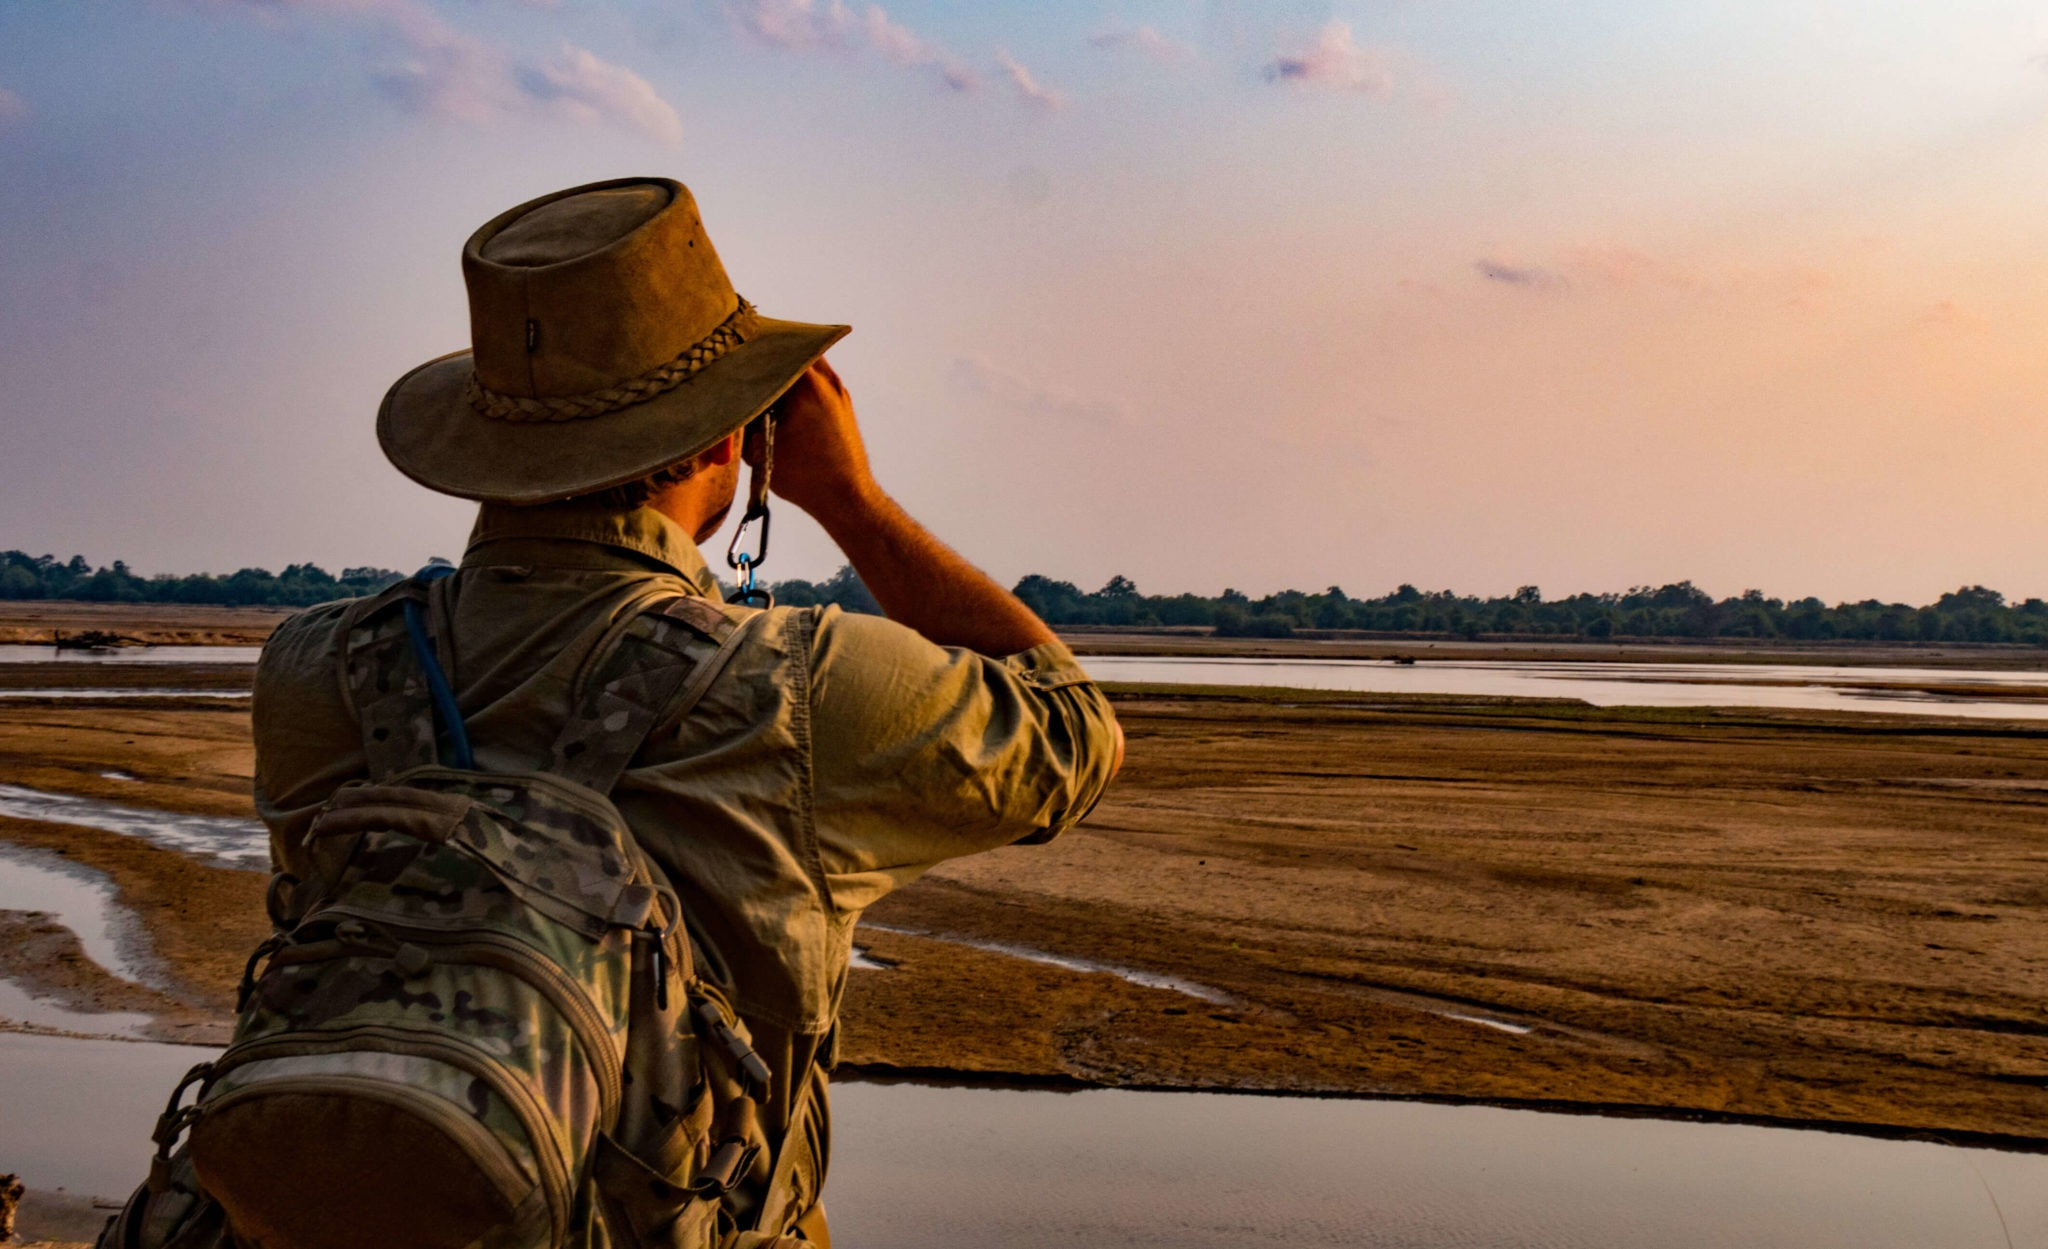 zambia luangwa valley game viewing frank